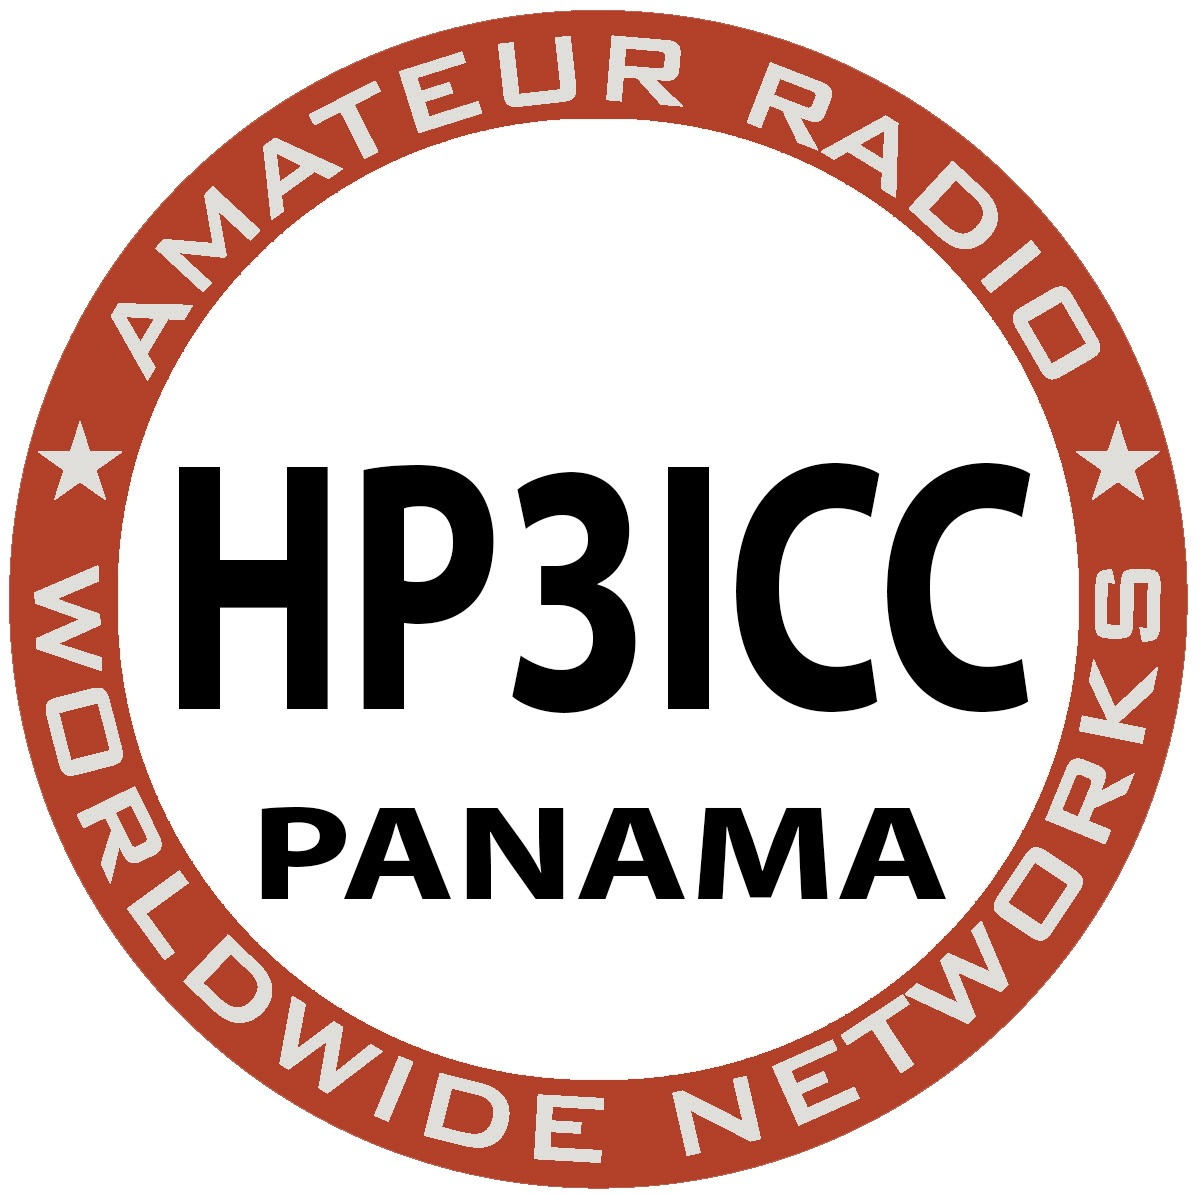 Primary Image for HP3ICC